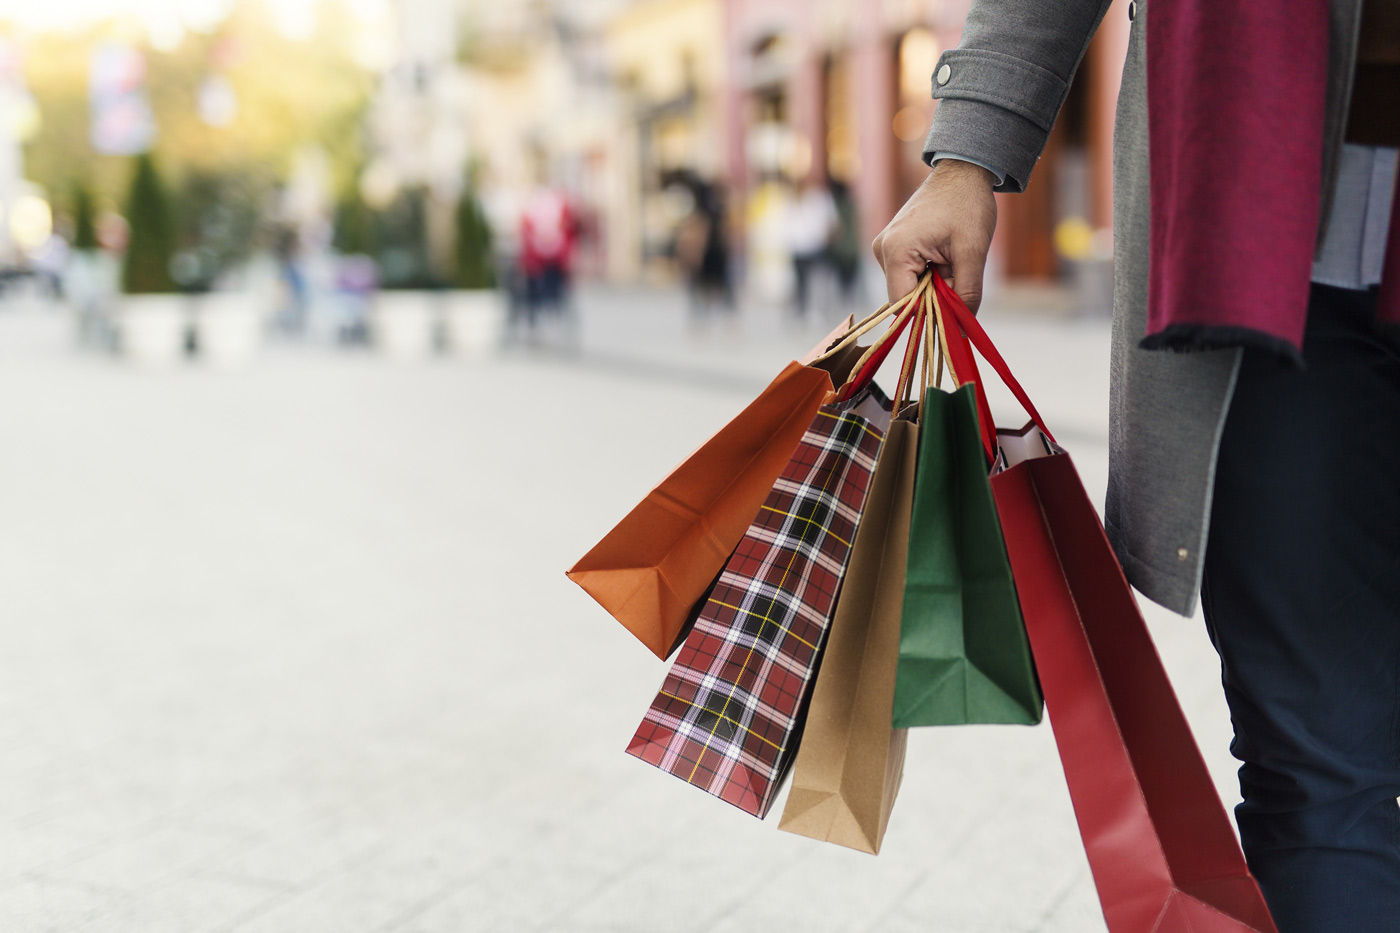 Get some of your holiday shopping done early when staying at the Comfort Inn and Suites Choice Hotel in Medicine Hat.